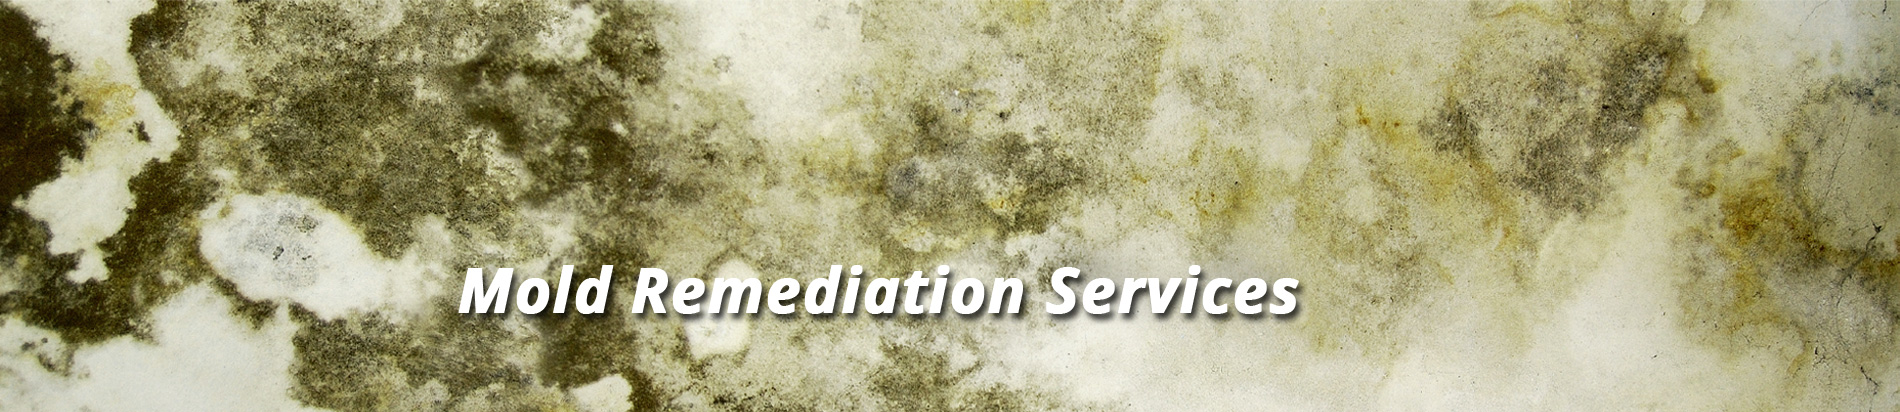 Mold-Remediation-banner